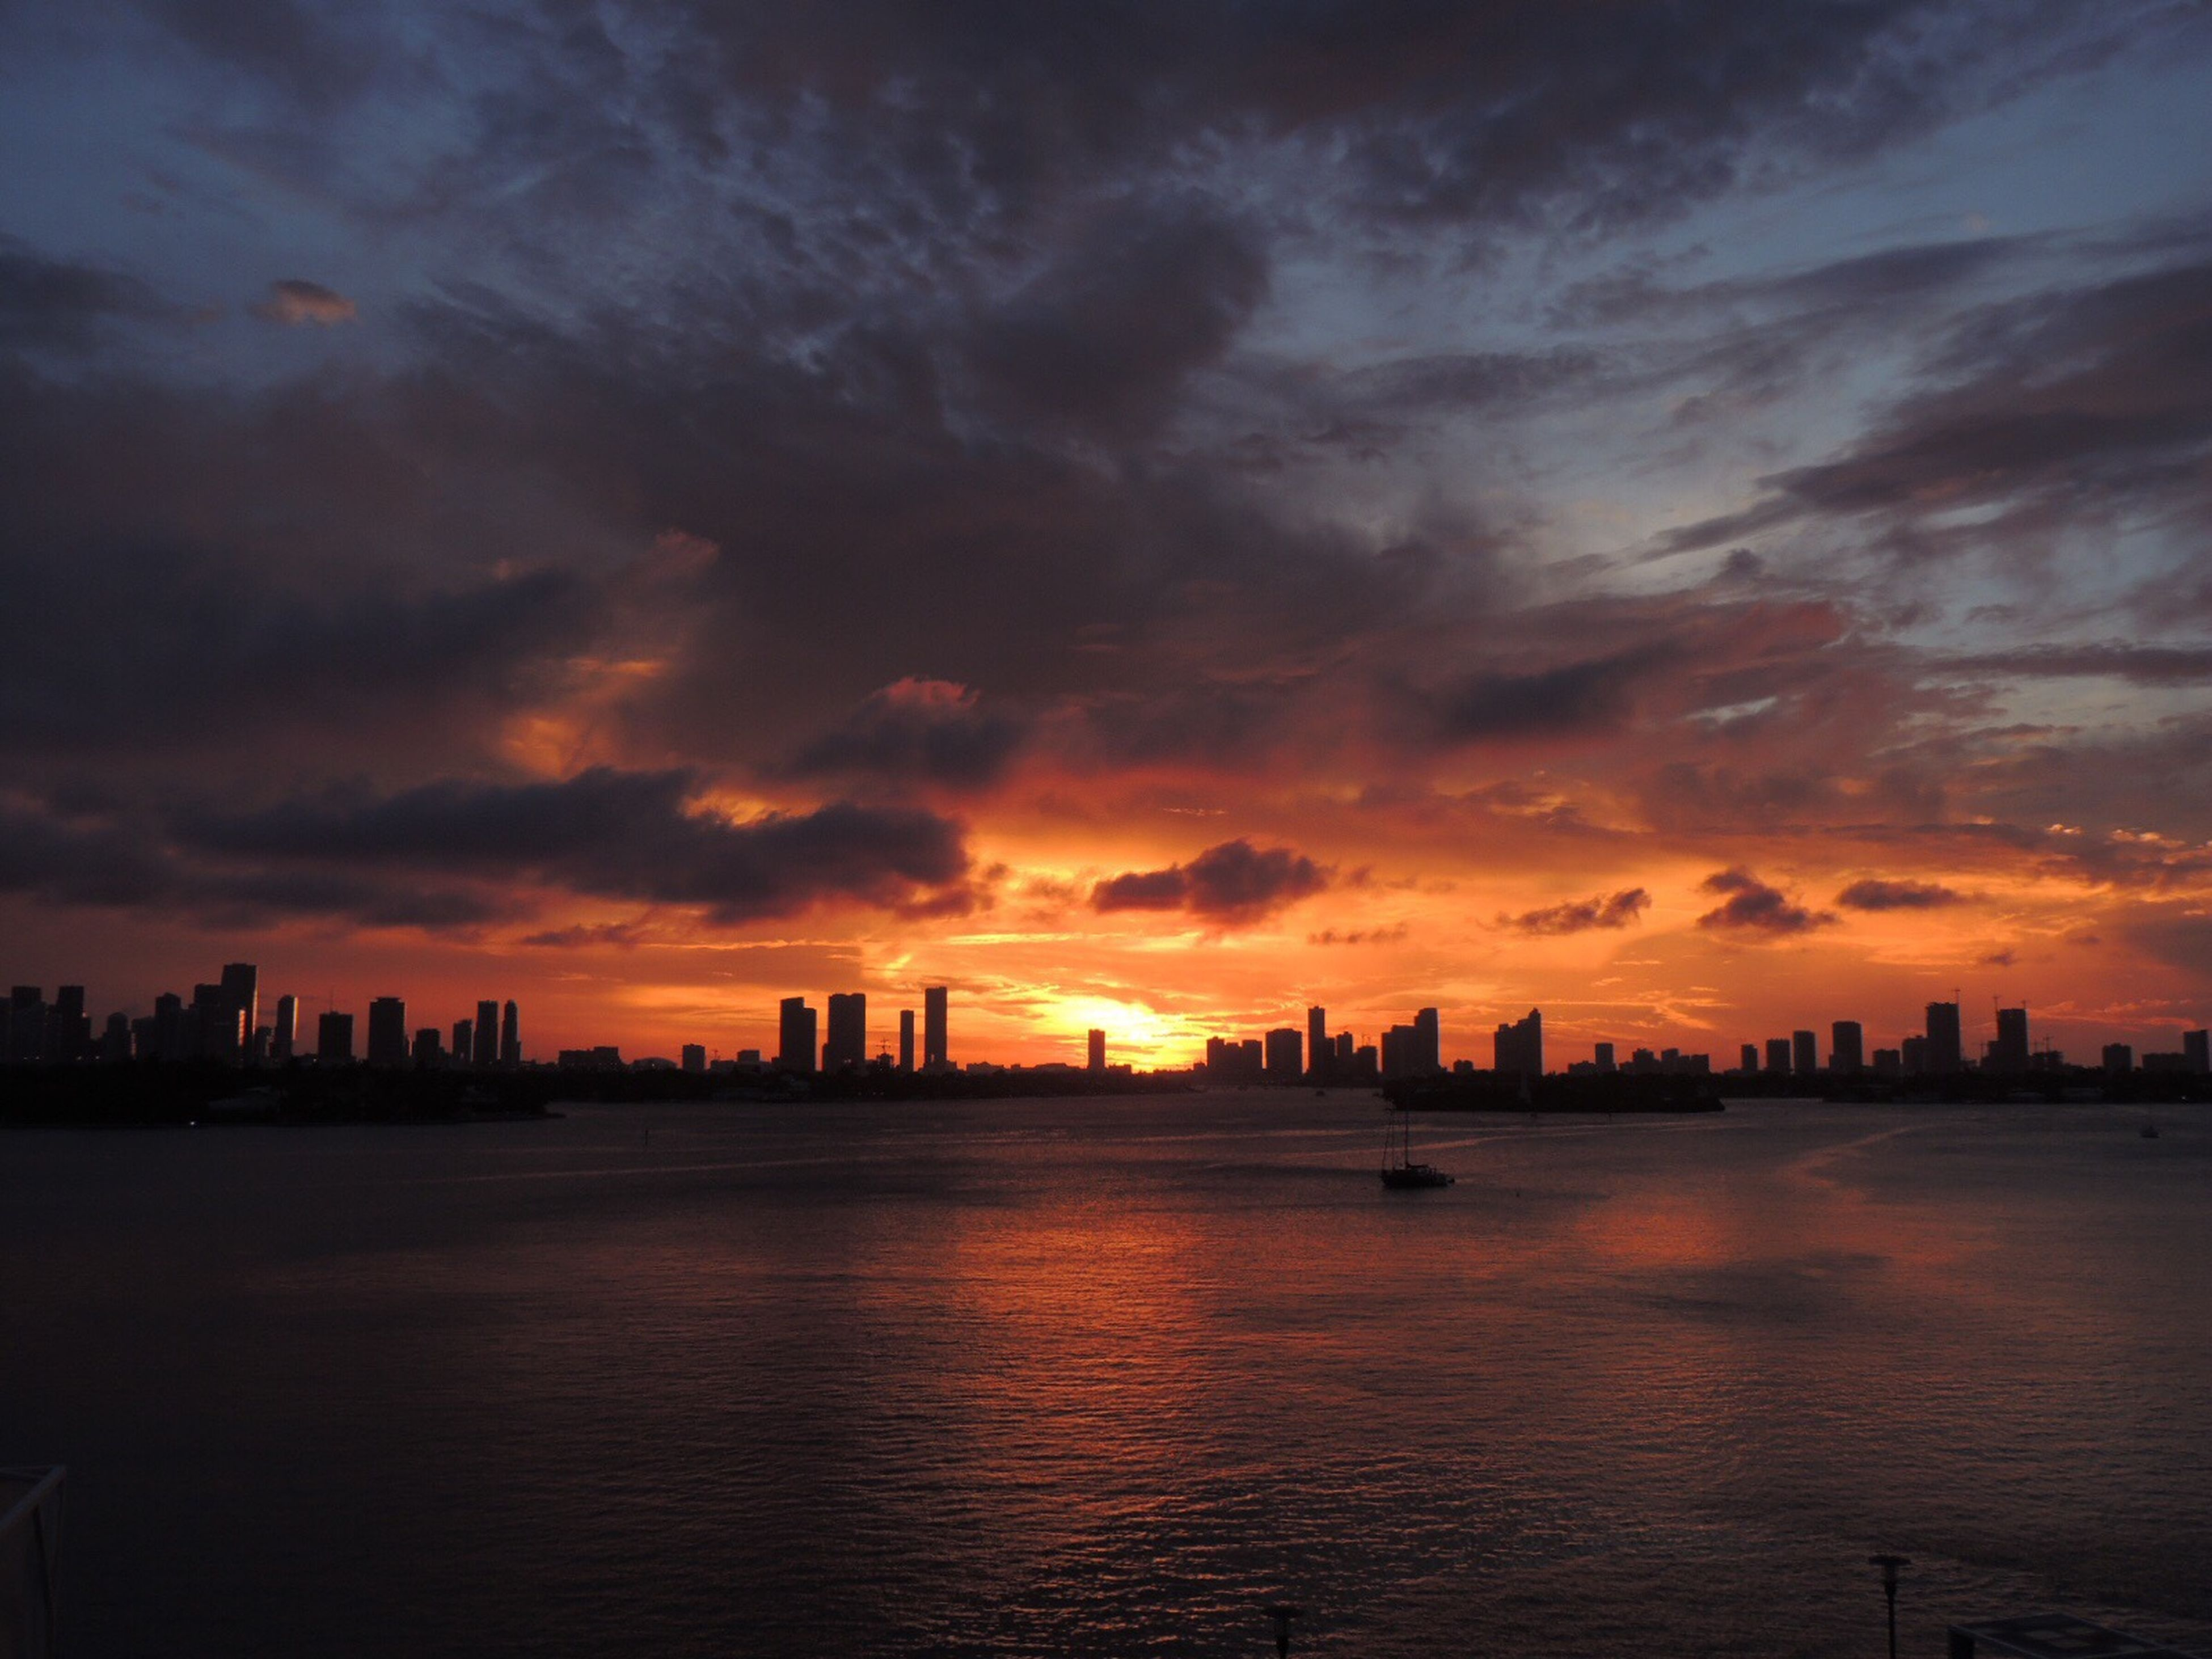 sunset, water, city, waterfront, scenics, architecture, built structure, sea, building exterior, cityscape, tranquil scene, orange color, tranquility, cloud - sky, sky, cloud, beauty in nature, urban skyline, calm, skyline, dramatic sky, skyscraper, outdoors, nature, distant, ocean, atmosphere, moody sky, building story